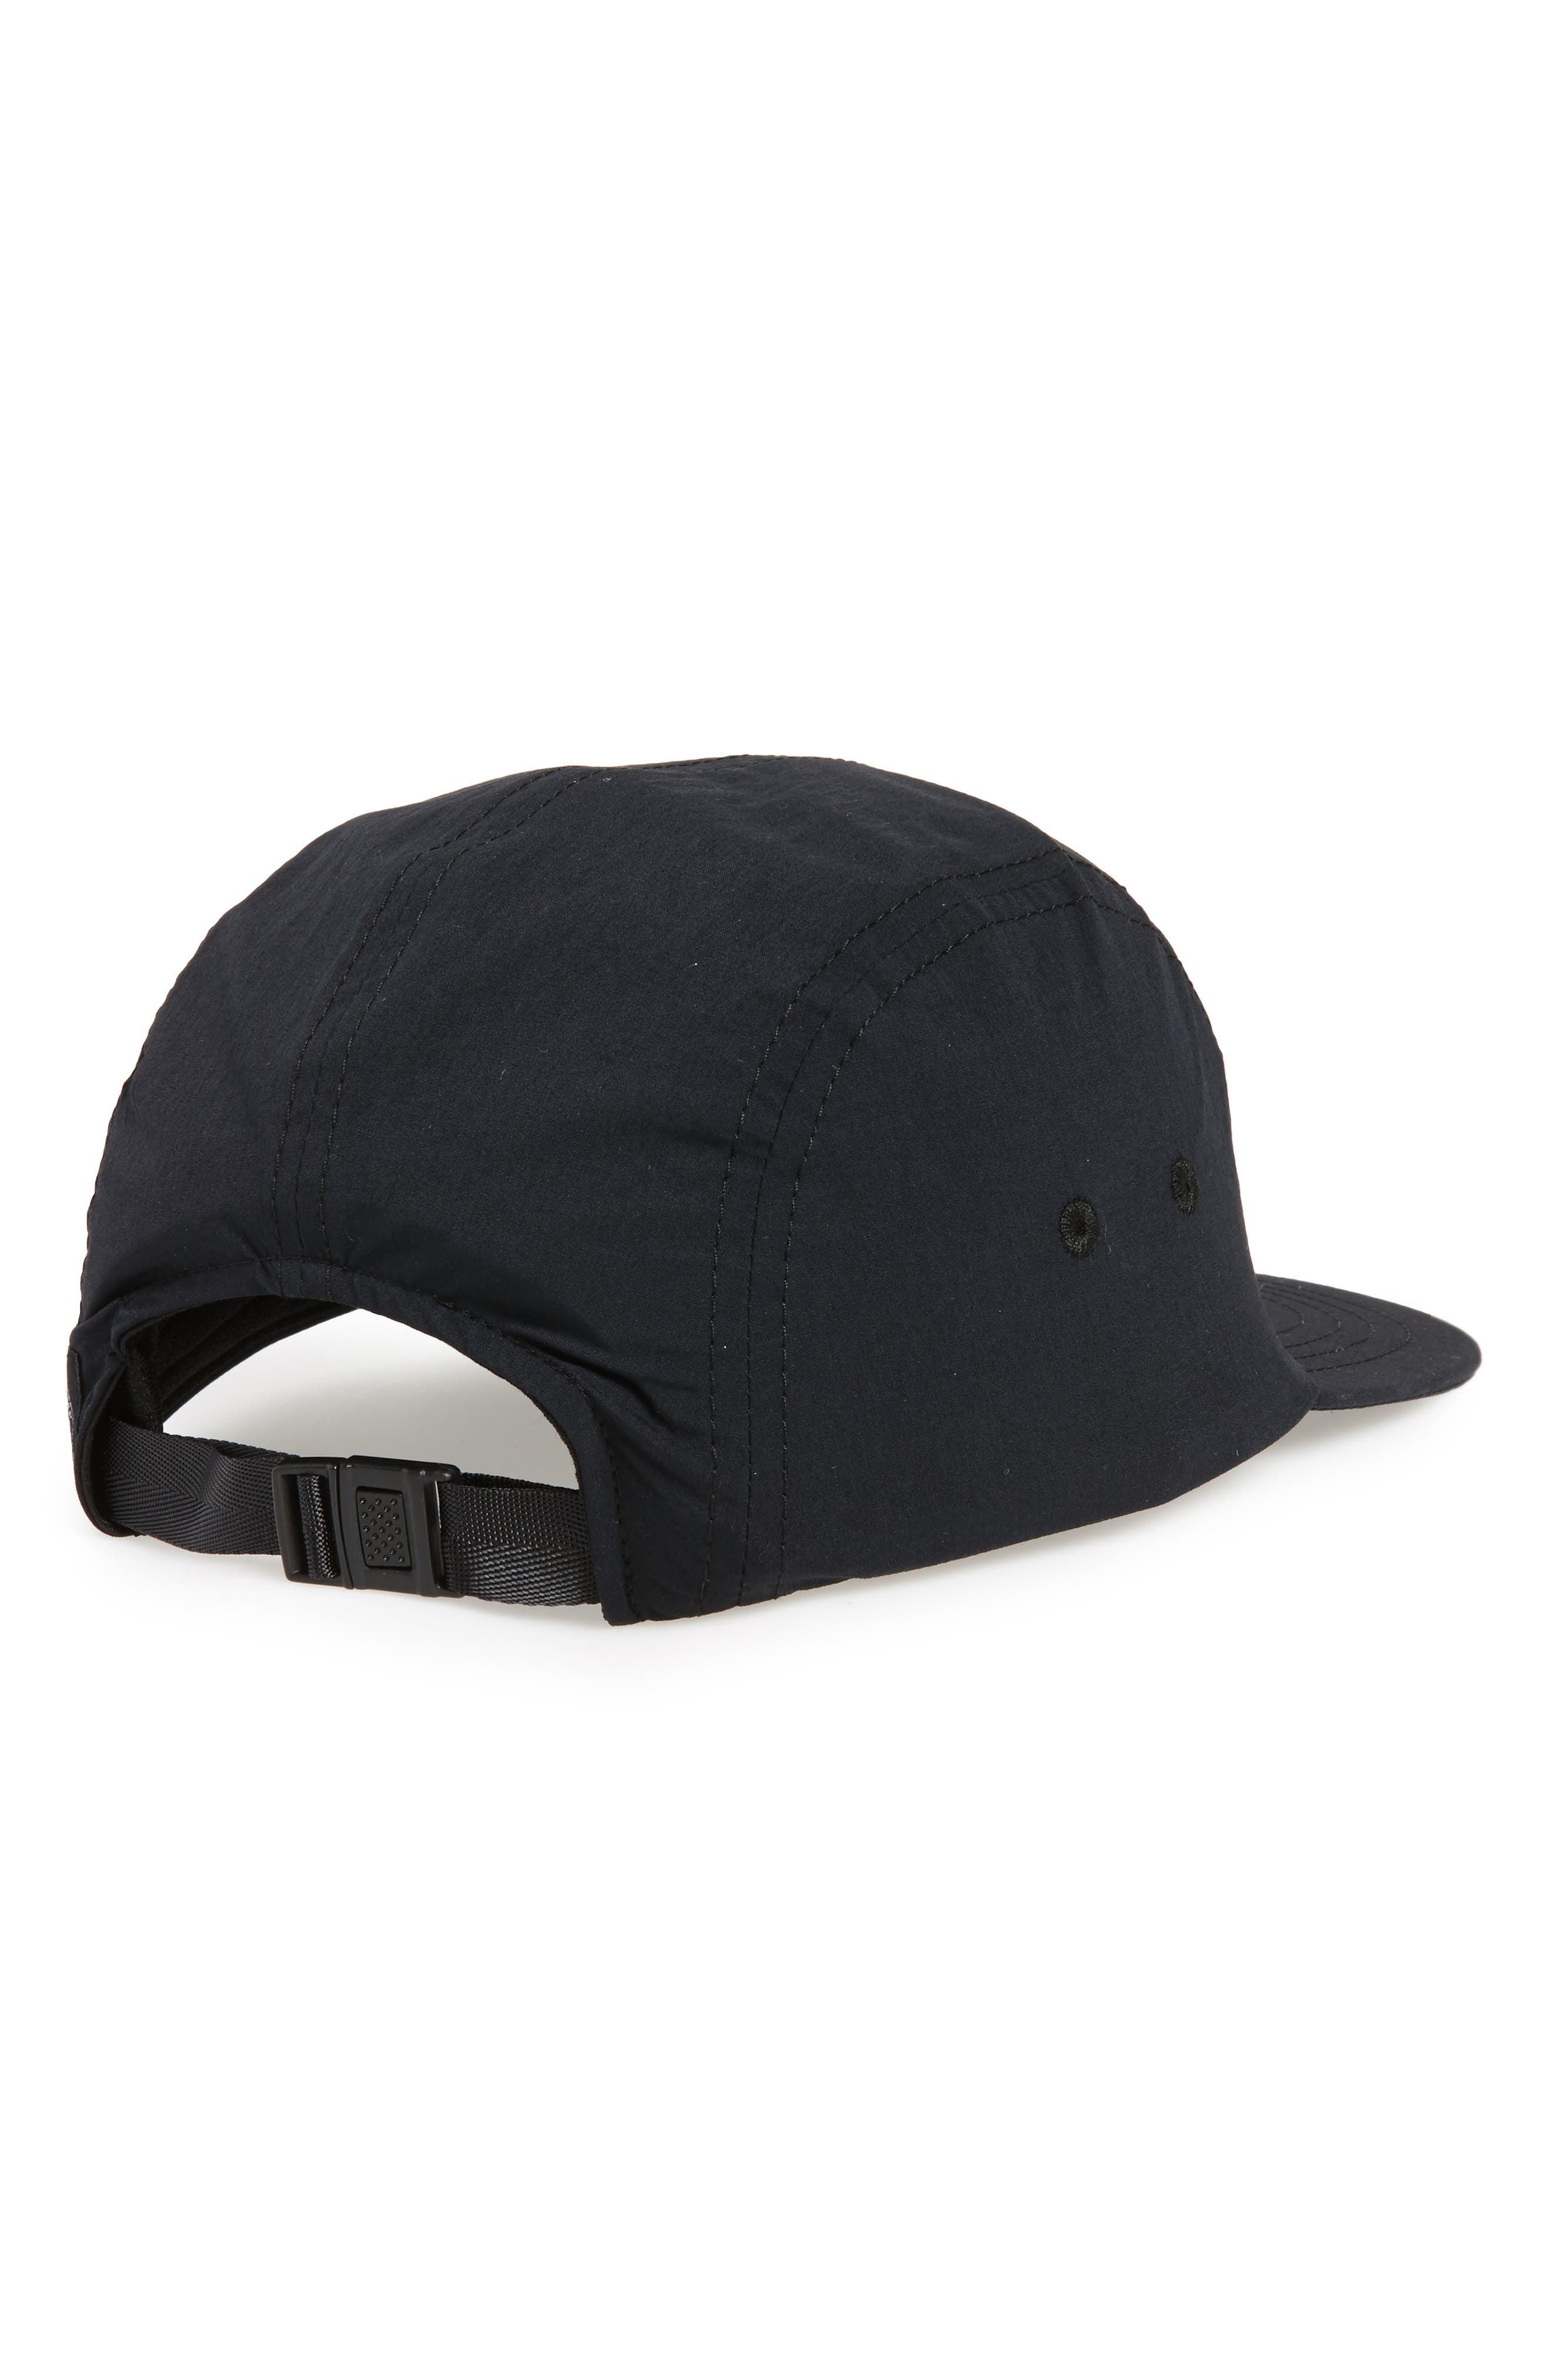 Five Panel Nylon Camp Hat,                             Alternate thumbnail 2, color,                             Black